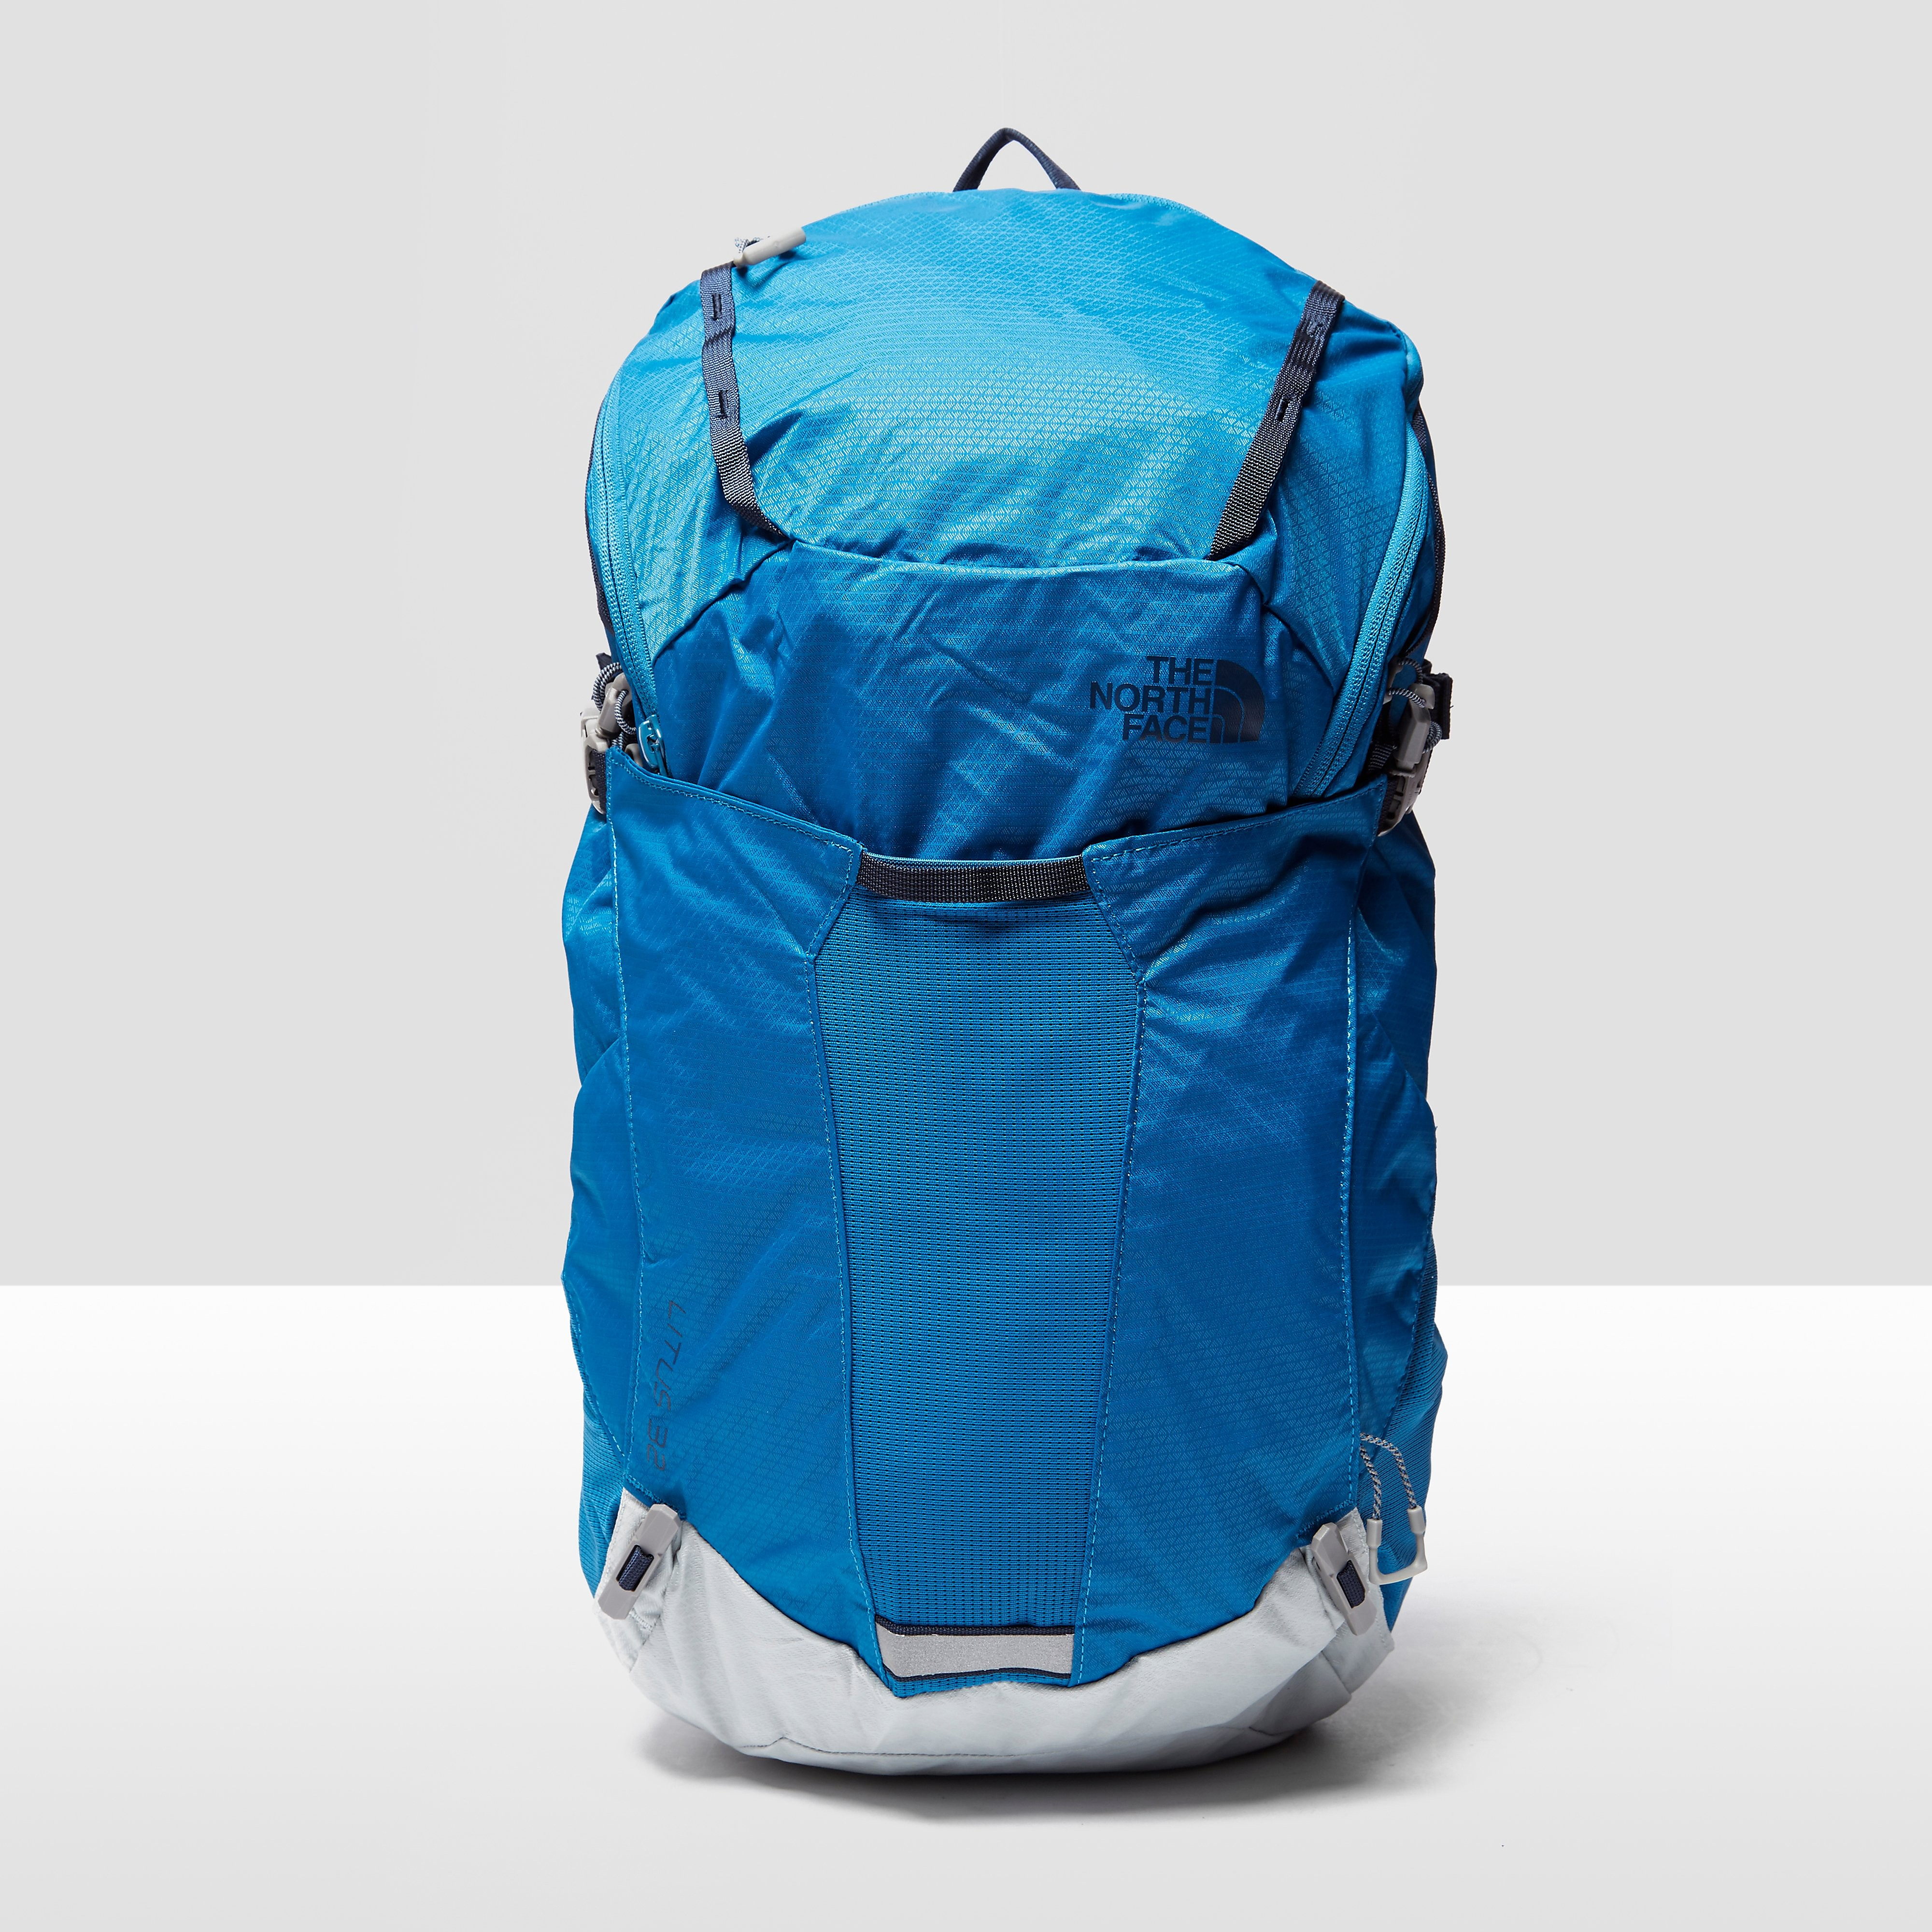 The North Face  Litus 32 RC Backpack